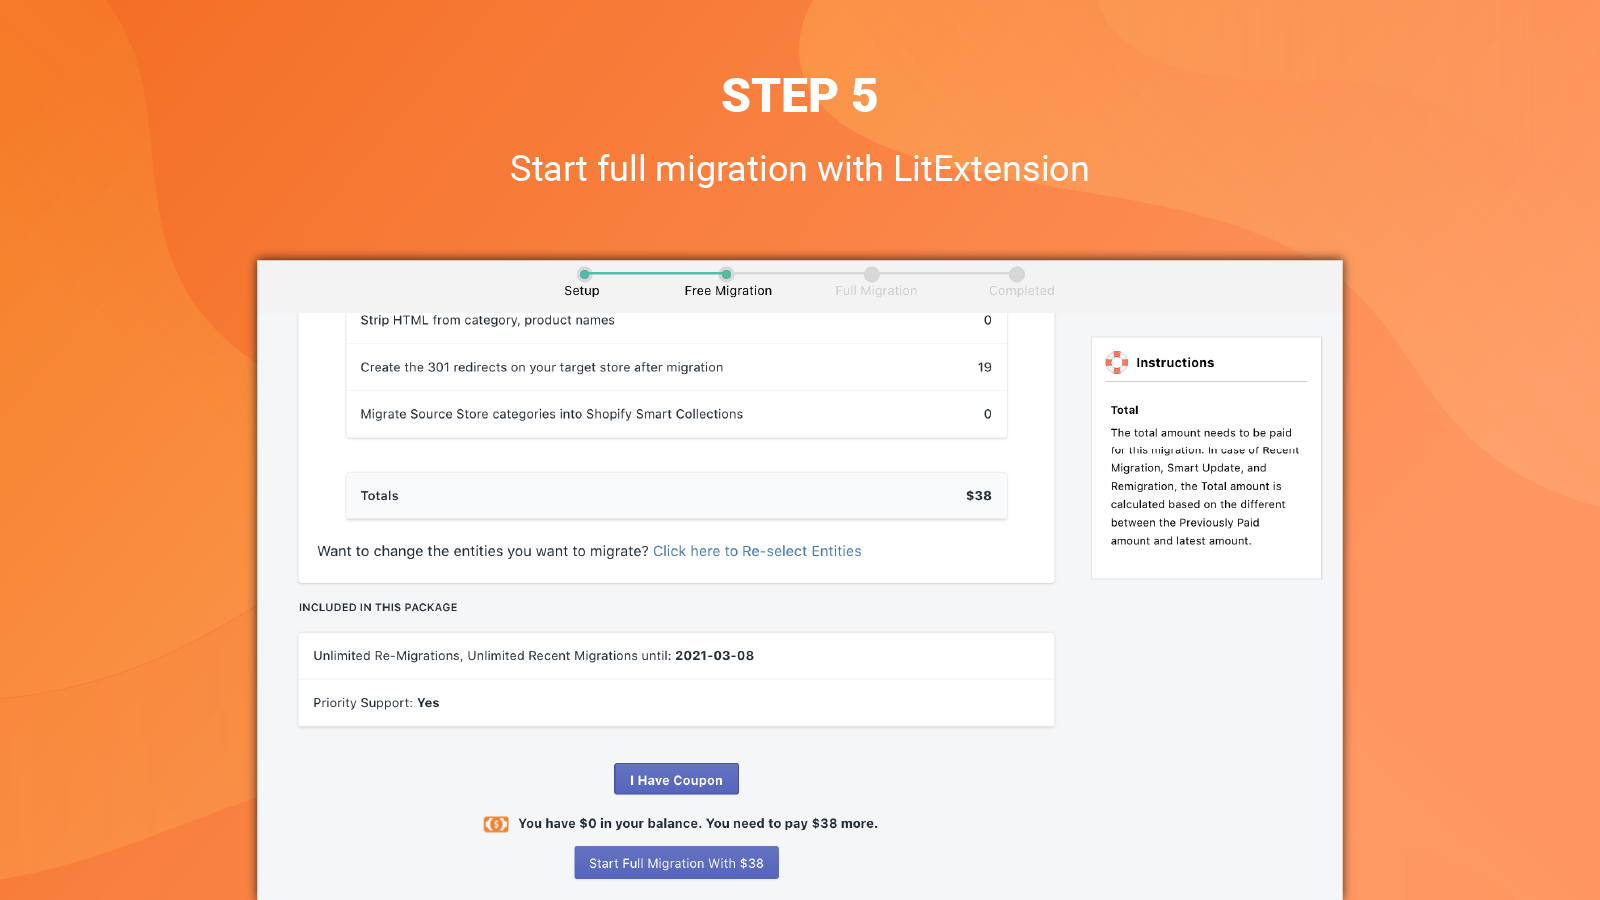 litextension wix import to shopify app full migration